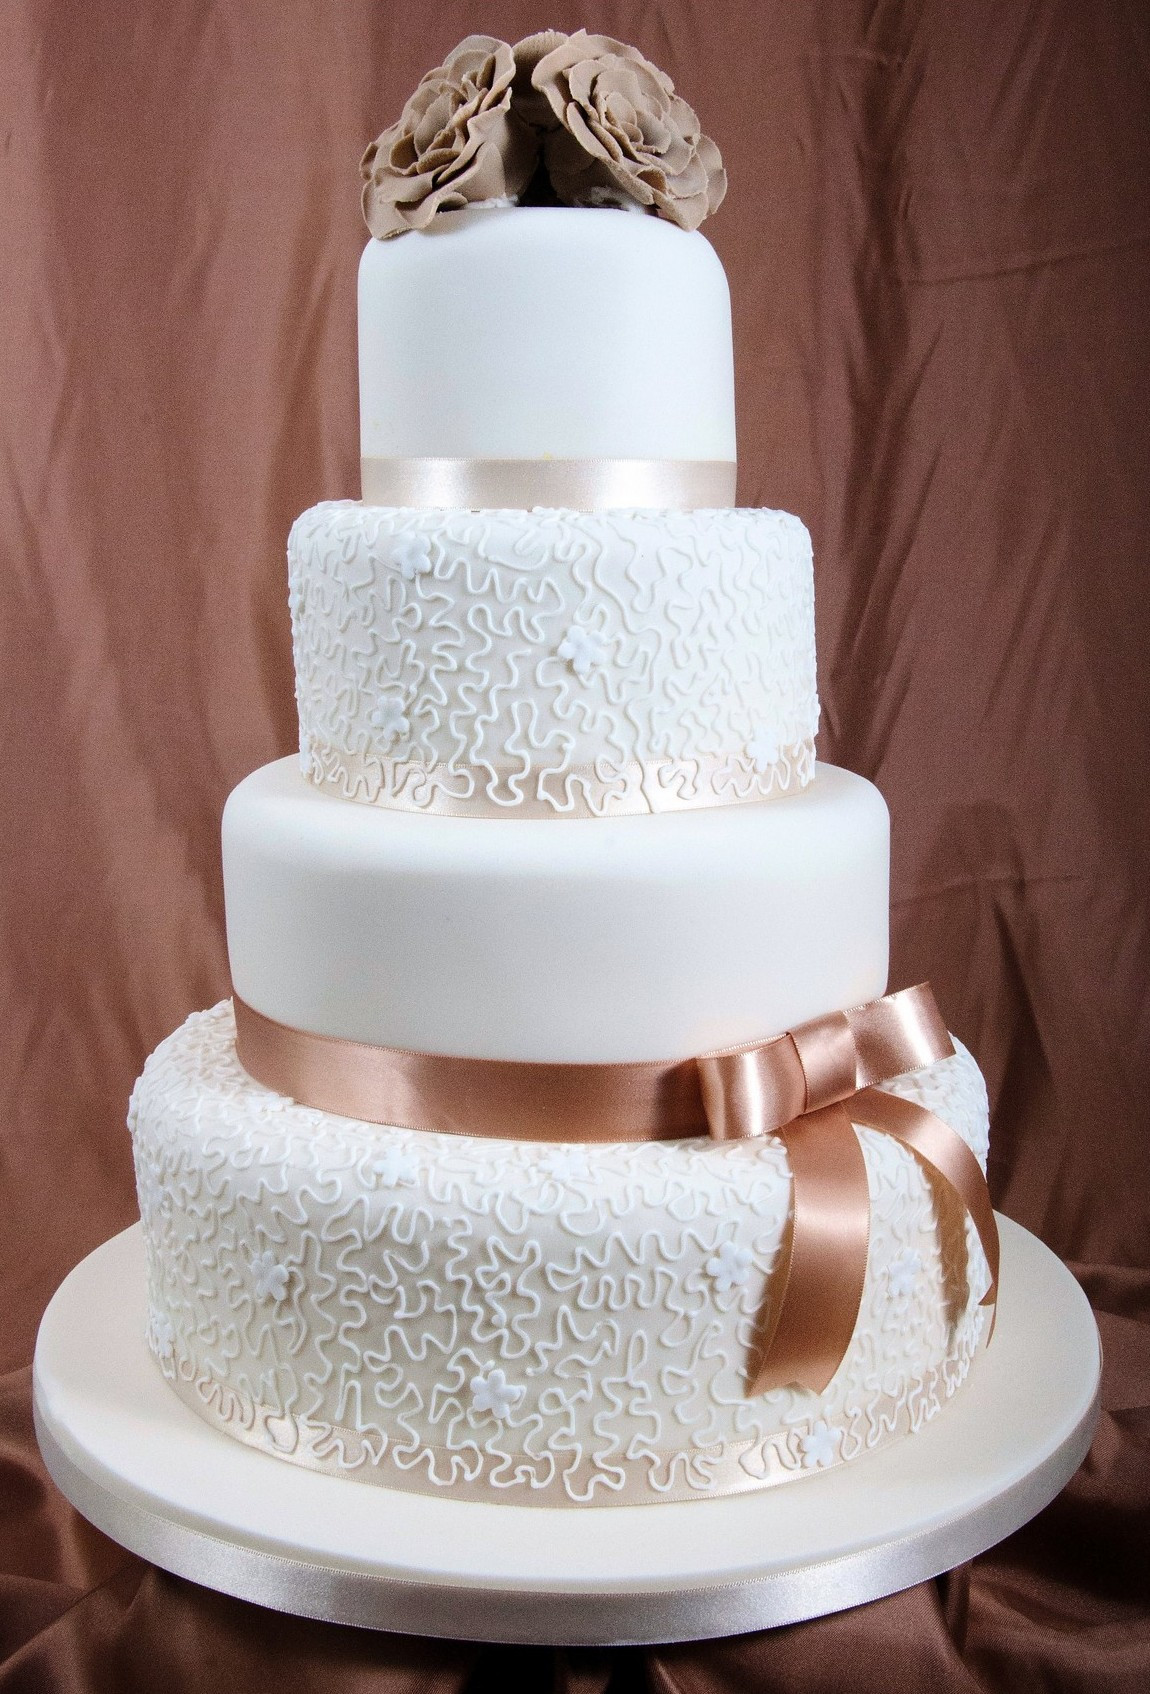 Wedding Cakes Galleries  Wedding Cake A Gallery of Cakes by Shelly WeddingDates